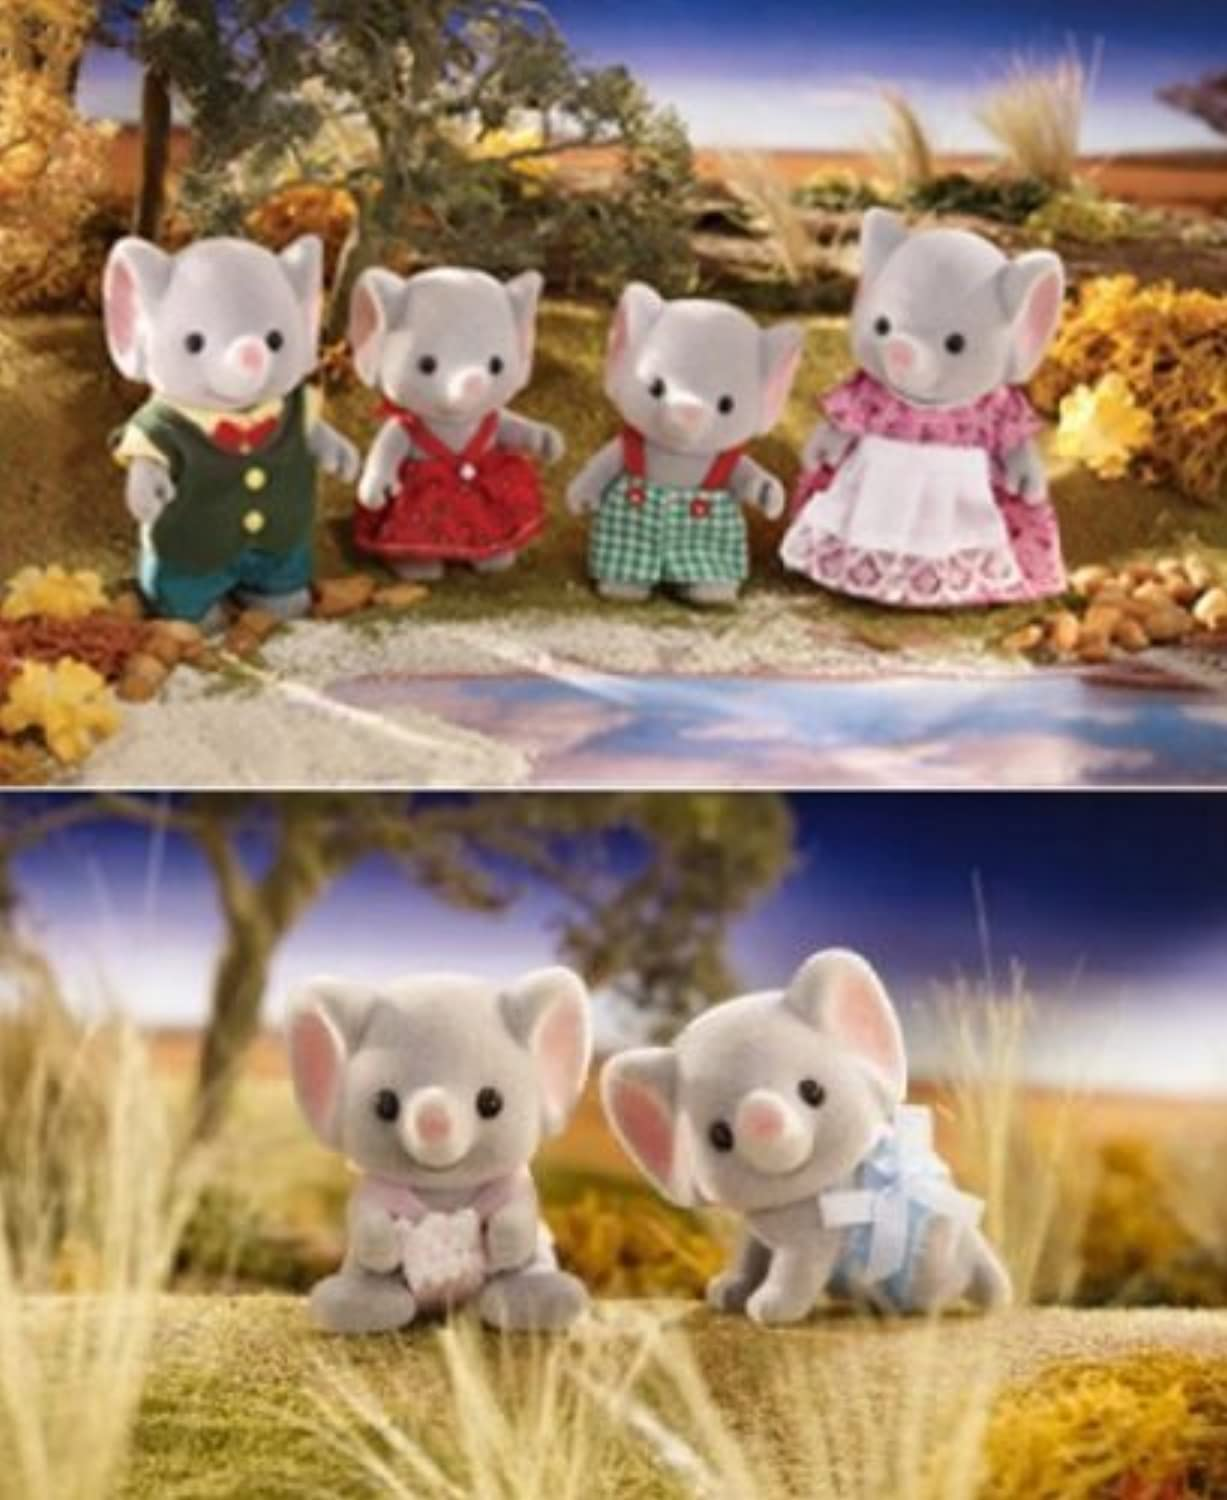 Calico Critters Ellswood Elephant Family Baby Twin Set 6 Figures by Calico Critters [並行輸入品]